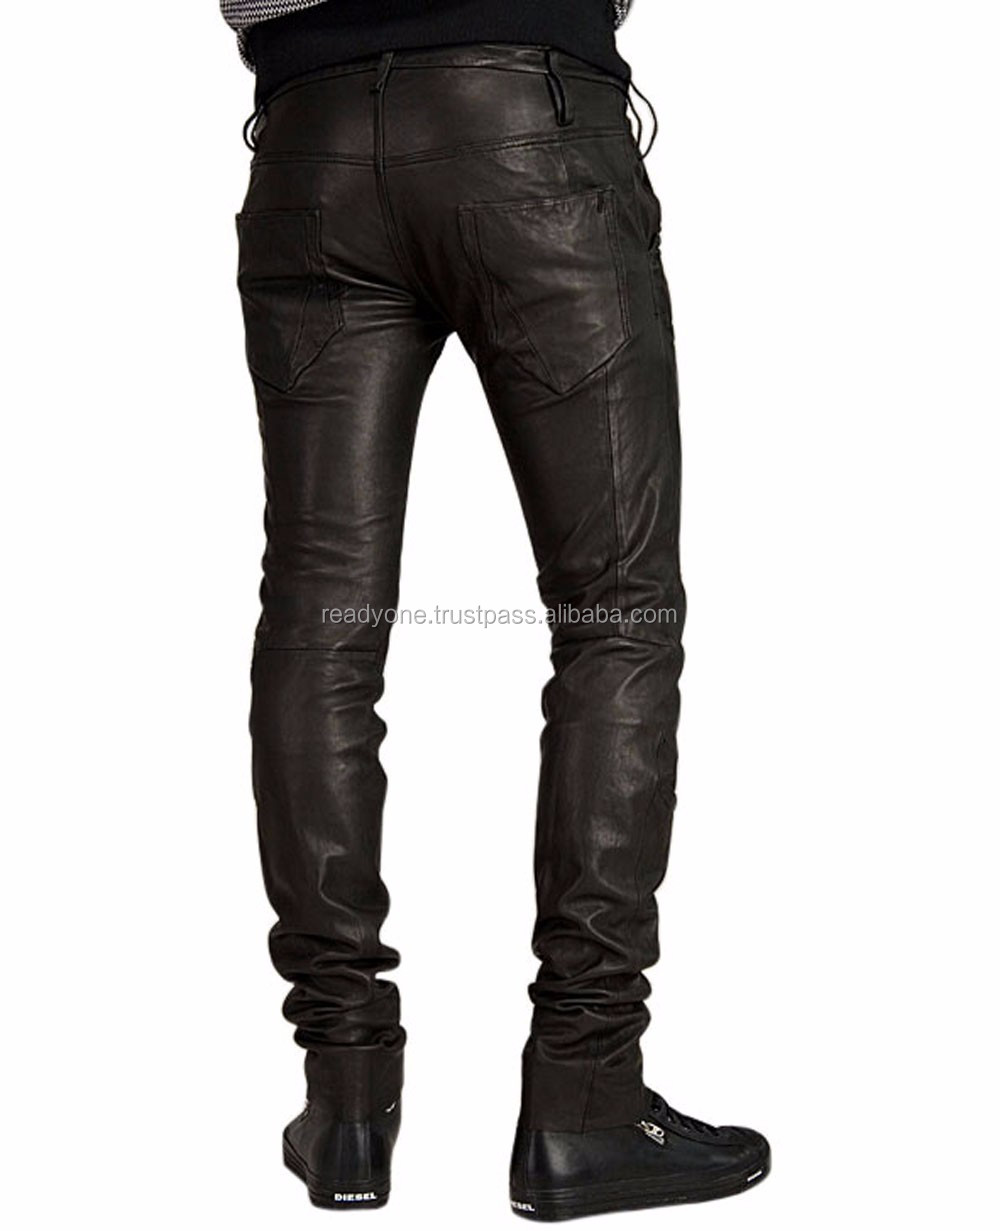 b683bf2fa04c Men Brown Leather Trouser   Men Leather Jeans   Side lace Leather pant